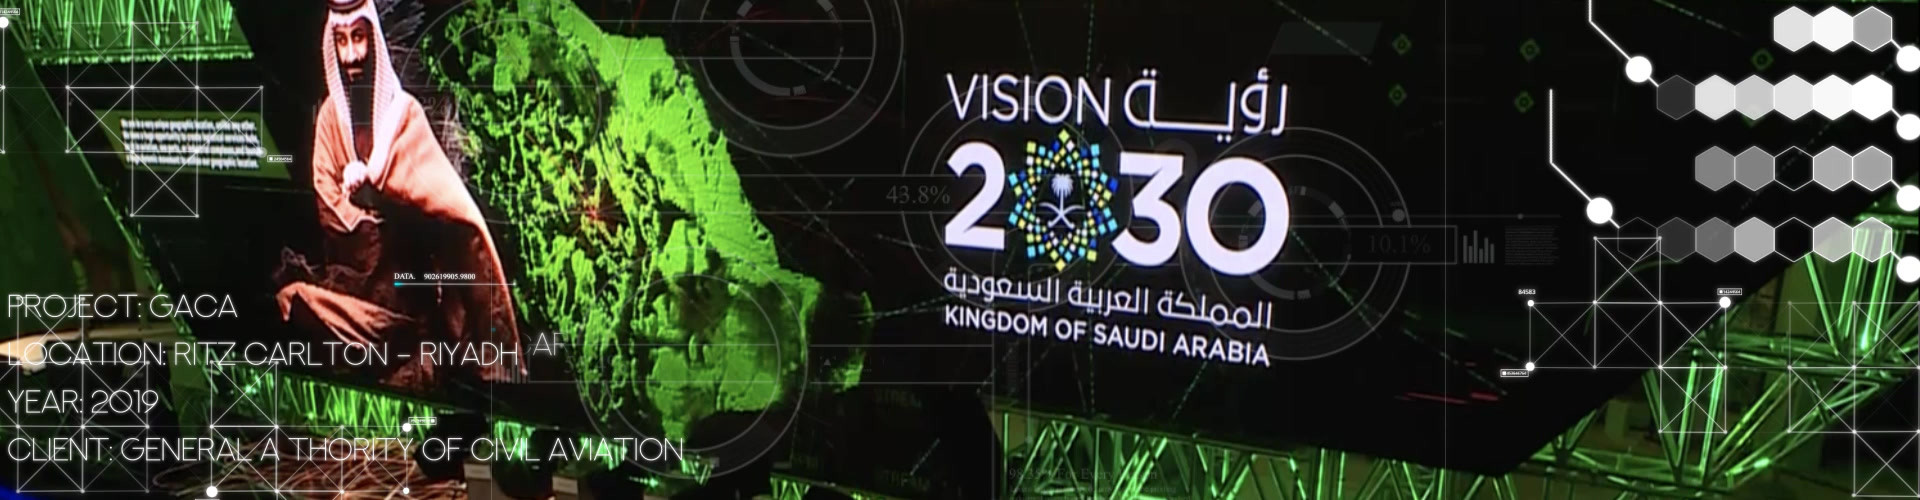 led floor scrcee dance flor 4k technology animation effect LED screen launchc event saudi arabia live mapping 3d projection summit forum conference broadcast online virtual xr vr